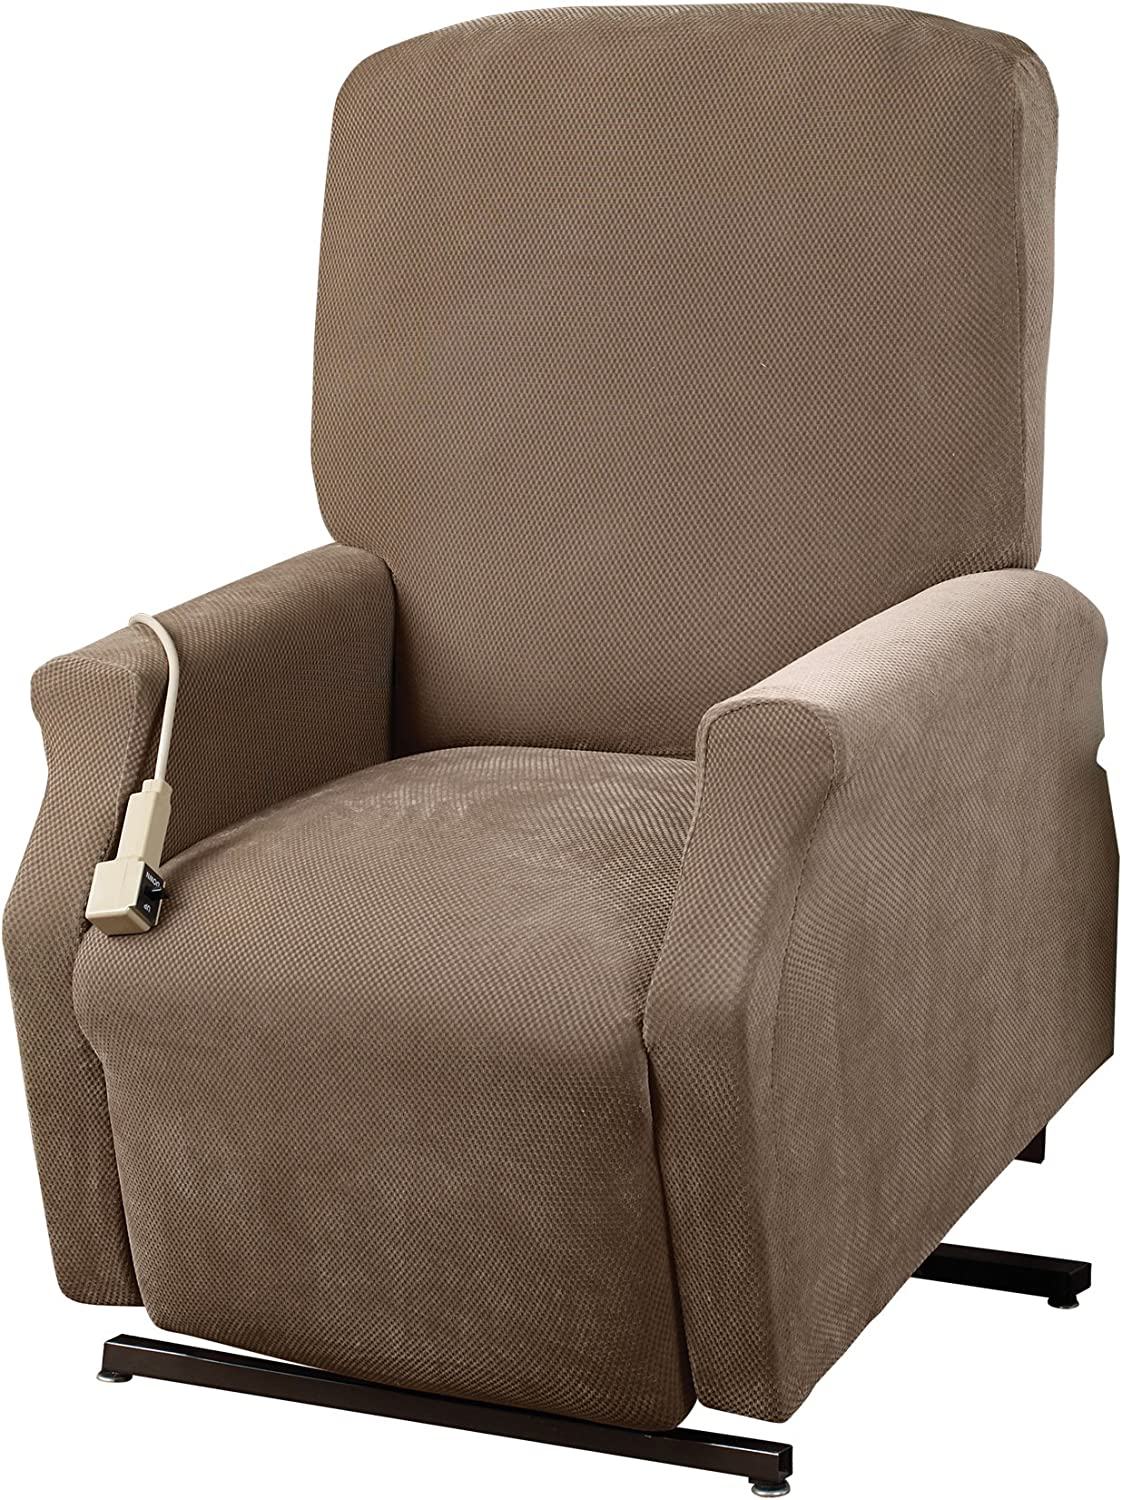 SureFit Home Decor Pique Box Cushion Medium Size Lift Recliner Chair One Piece Slipcover, Stretch Form Fit, Polyester/Spandex, Machine Washable, Taupe Color